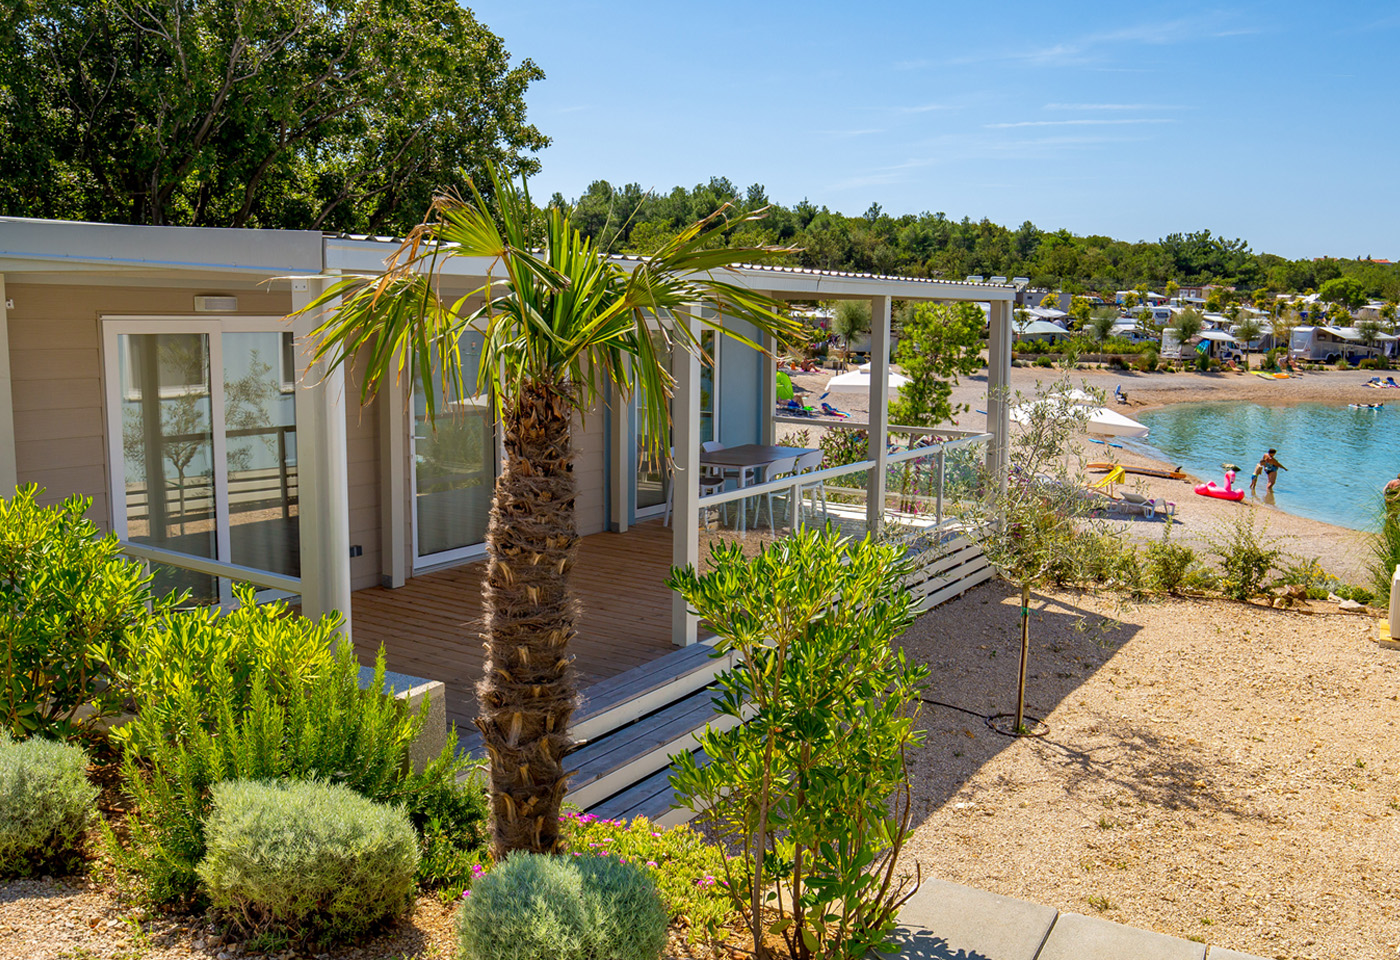 15% discount on accommodation in fully equipped mobile home